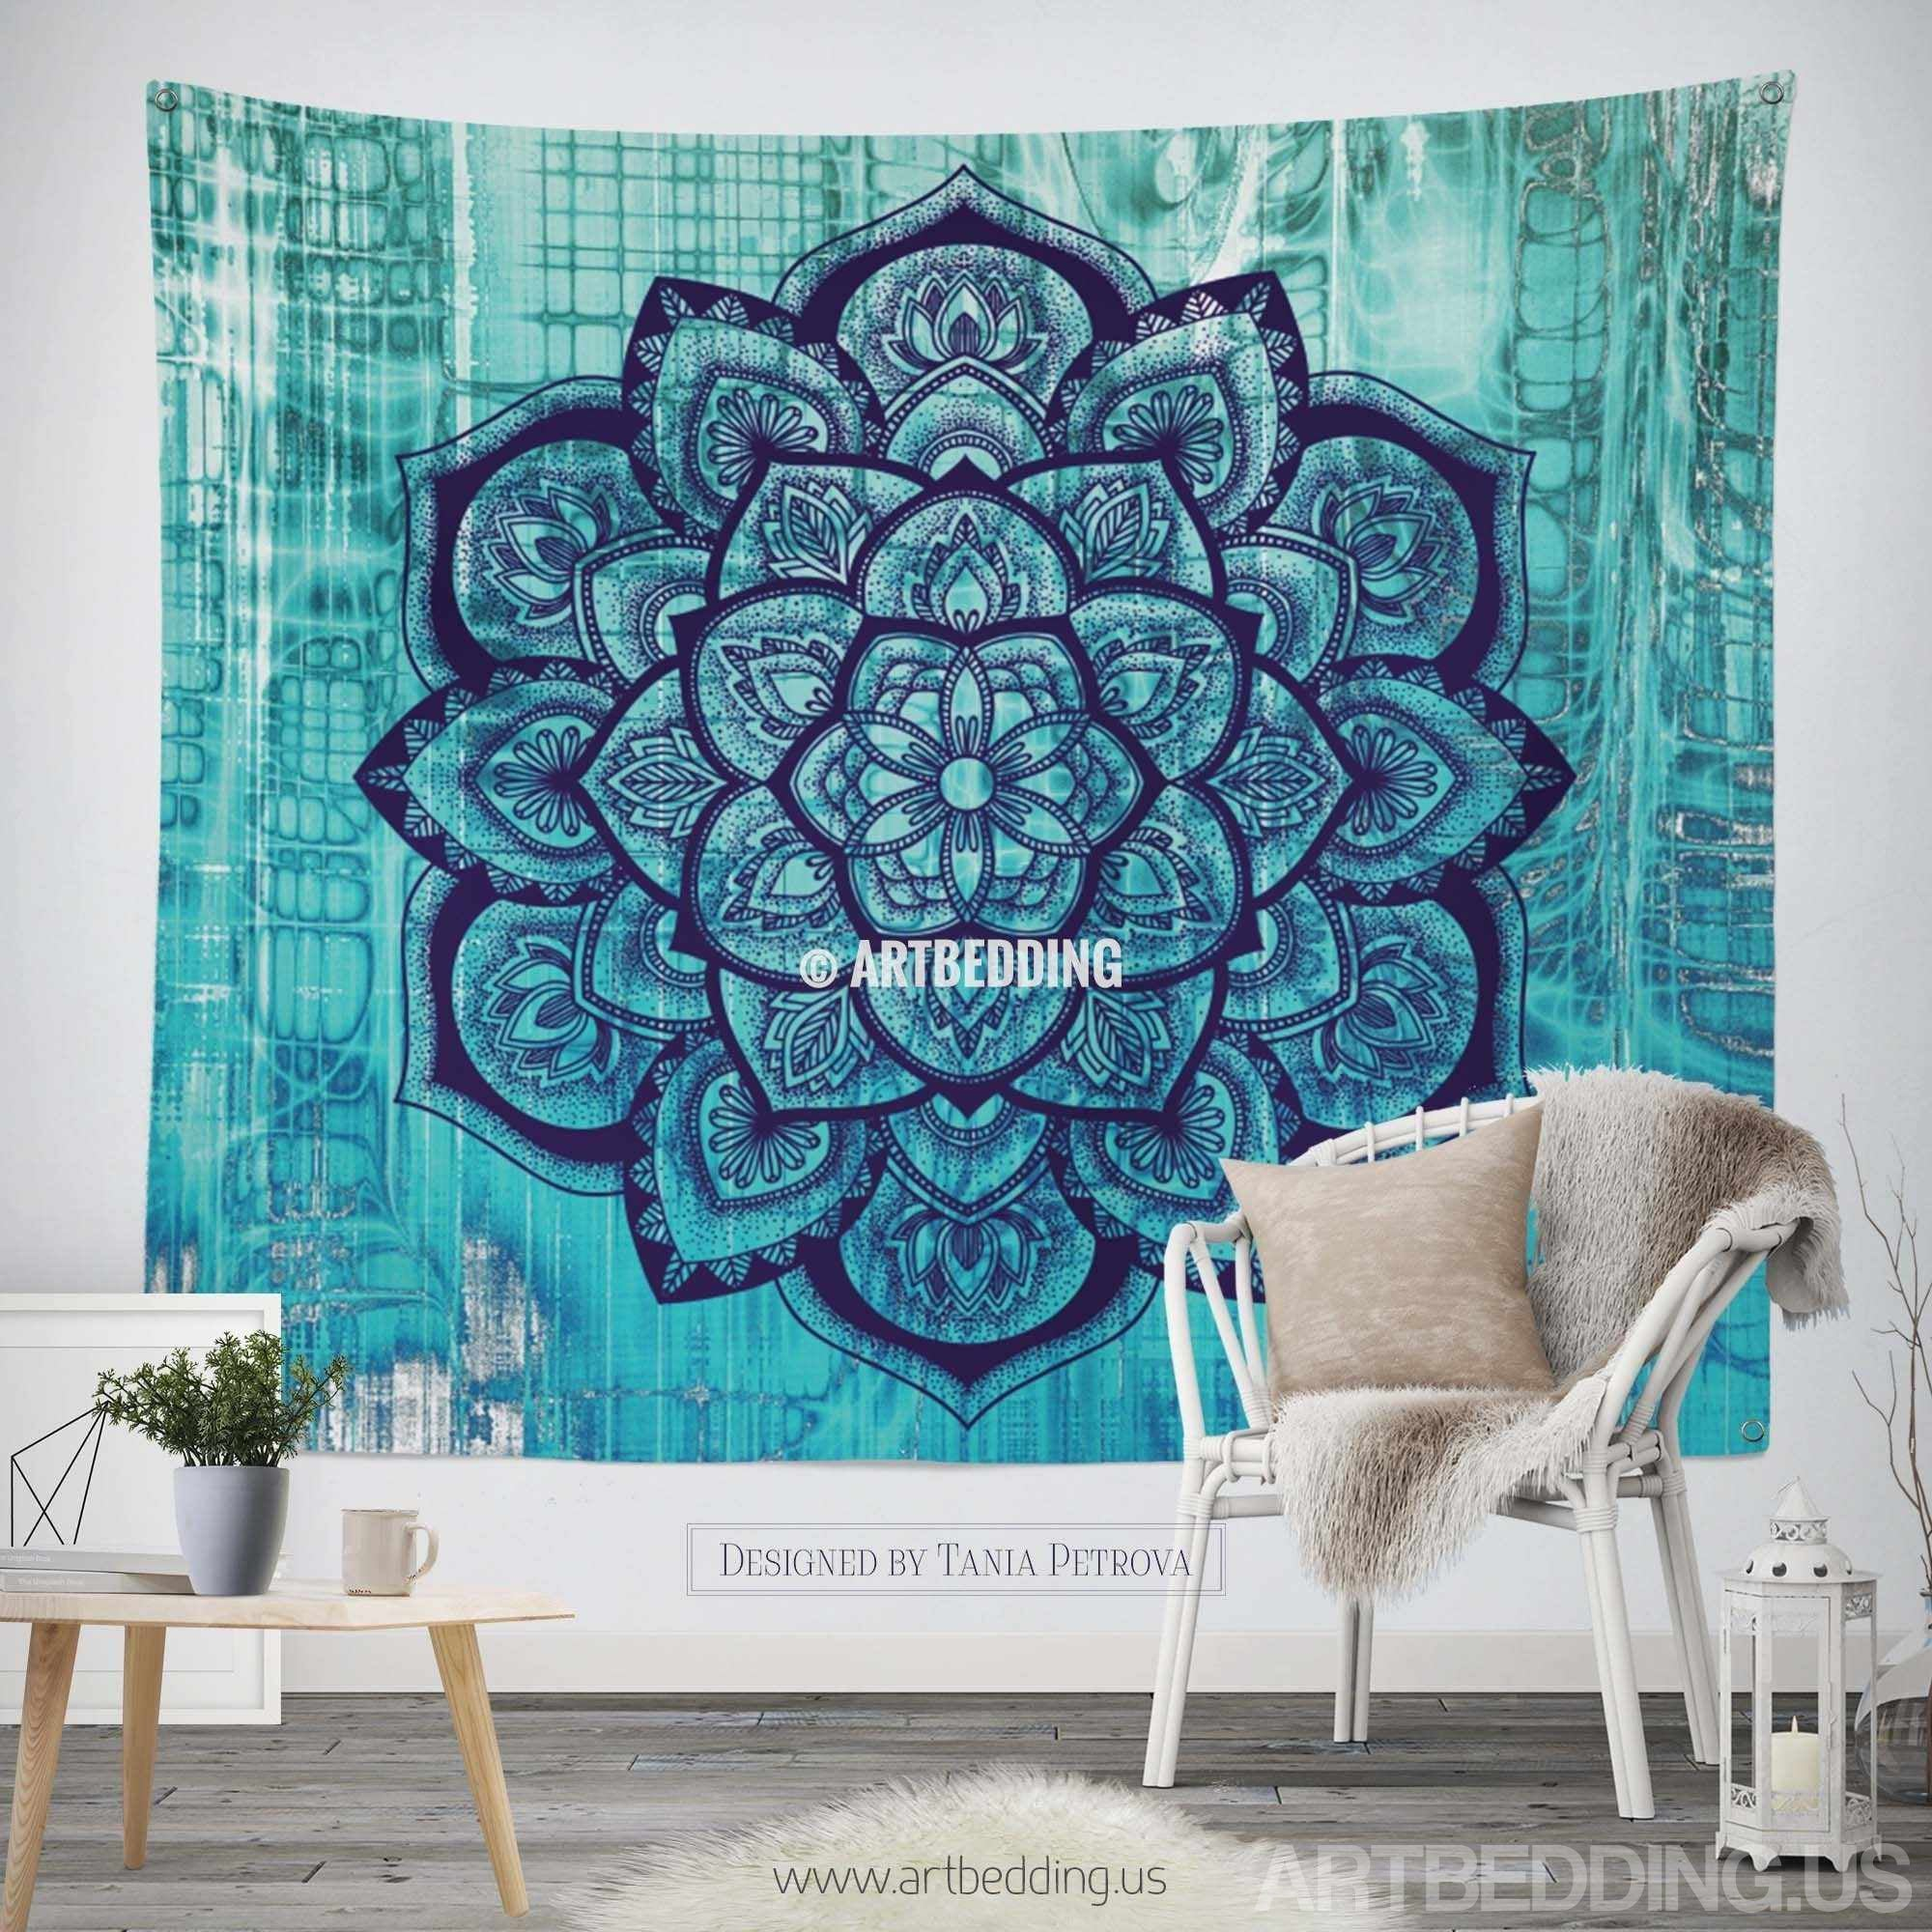 Tapestry Wall Hanging boho tapestry, lotus mandala tapestry wall hanging, bohemian decor